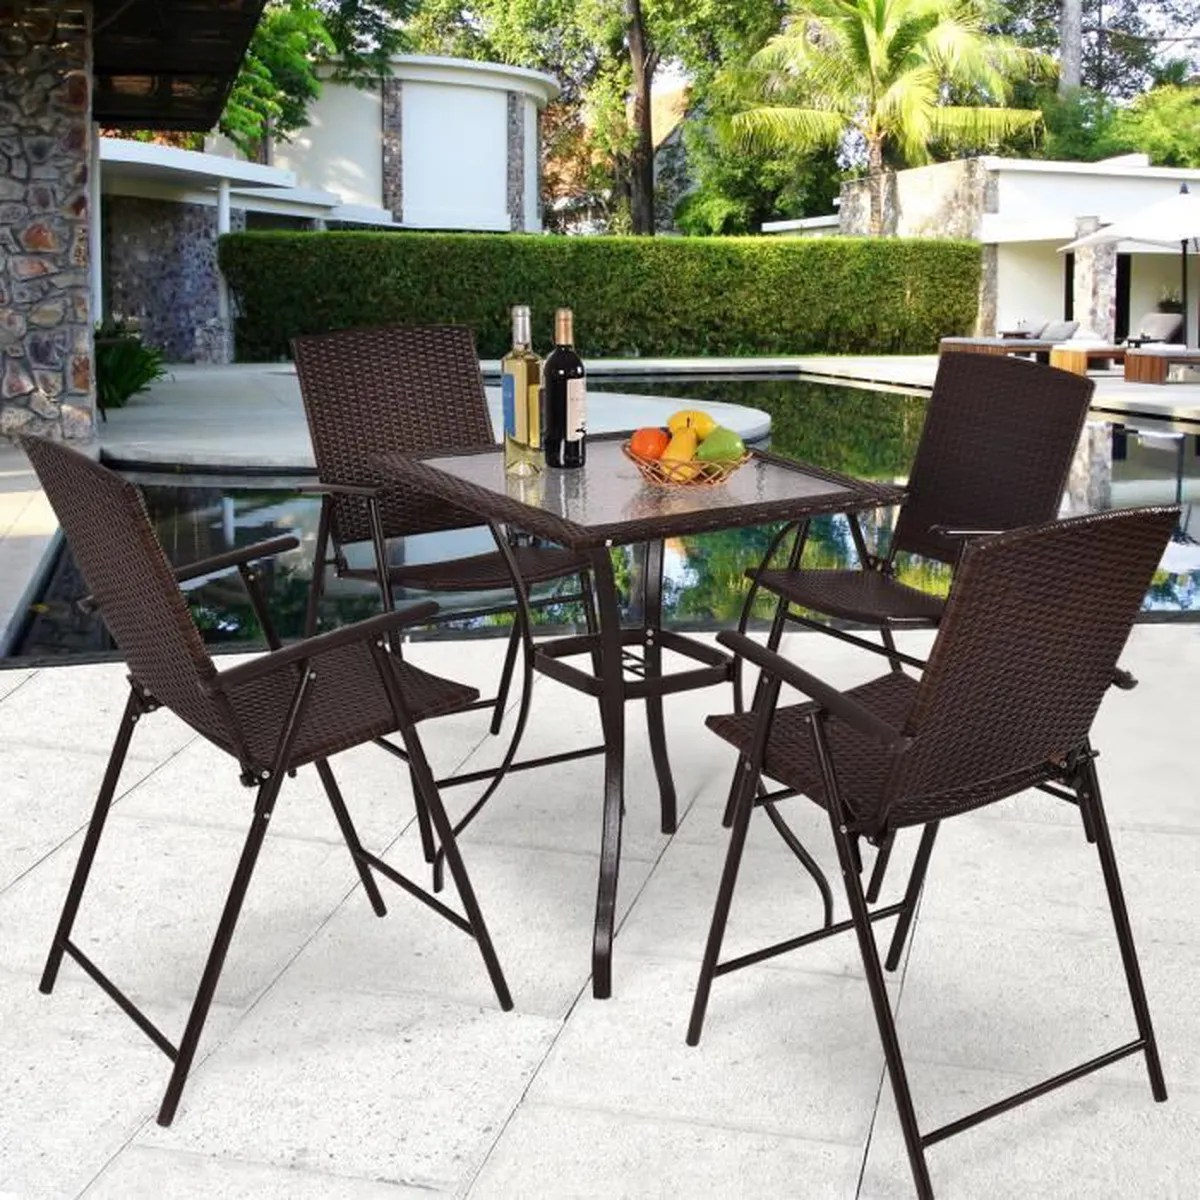 Ensemble Table Et Chaise En Rotin Ensemble De Jardin Pliant Poly Rotin 4 Chaise Et 1 Table